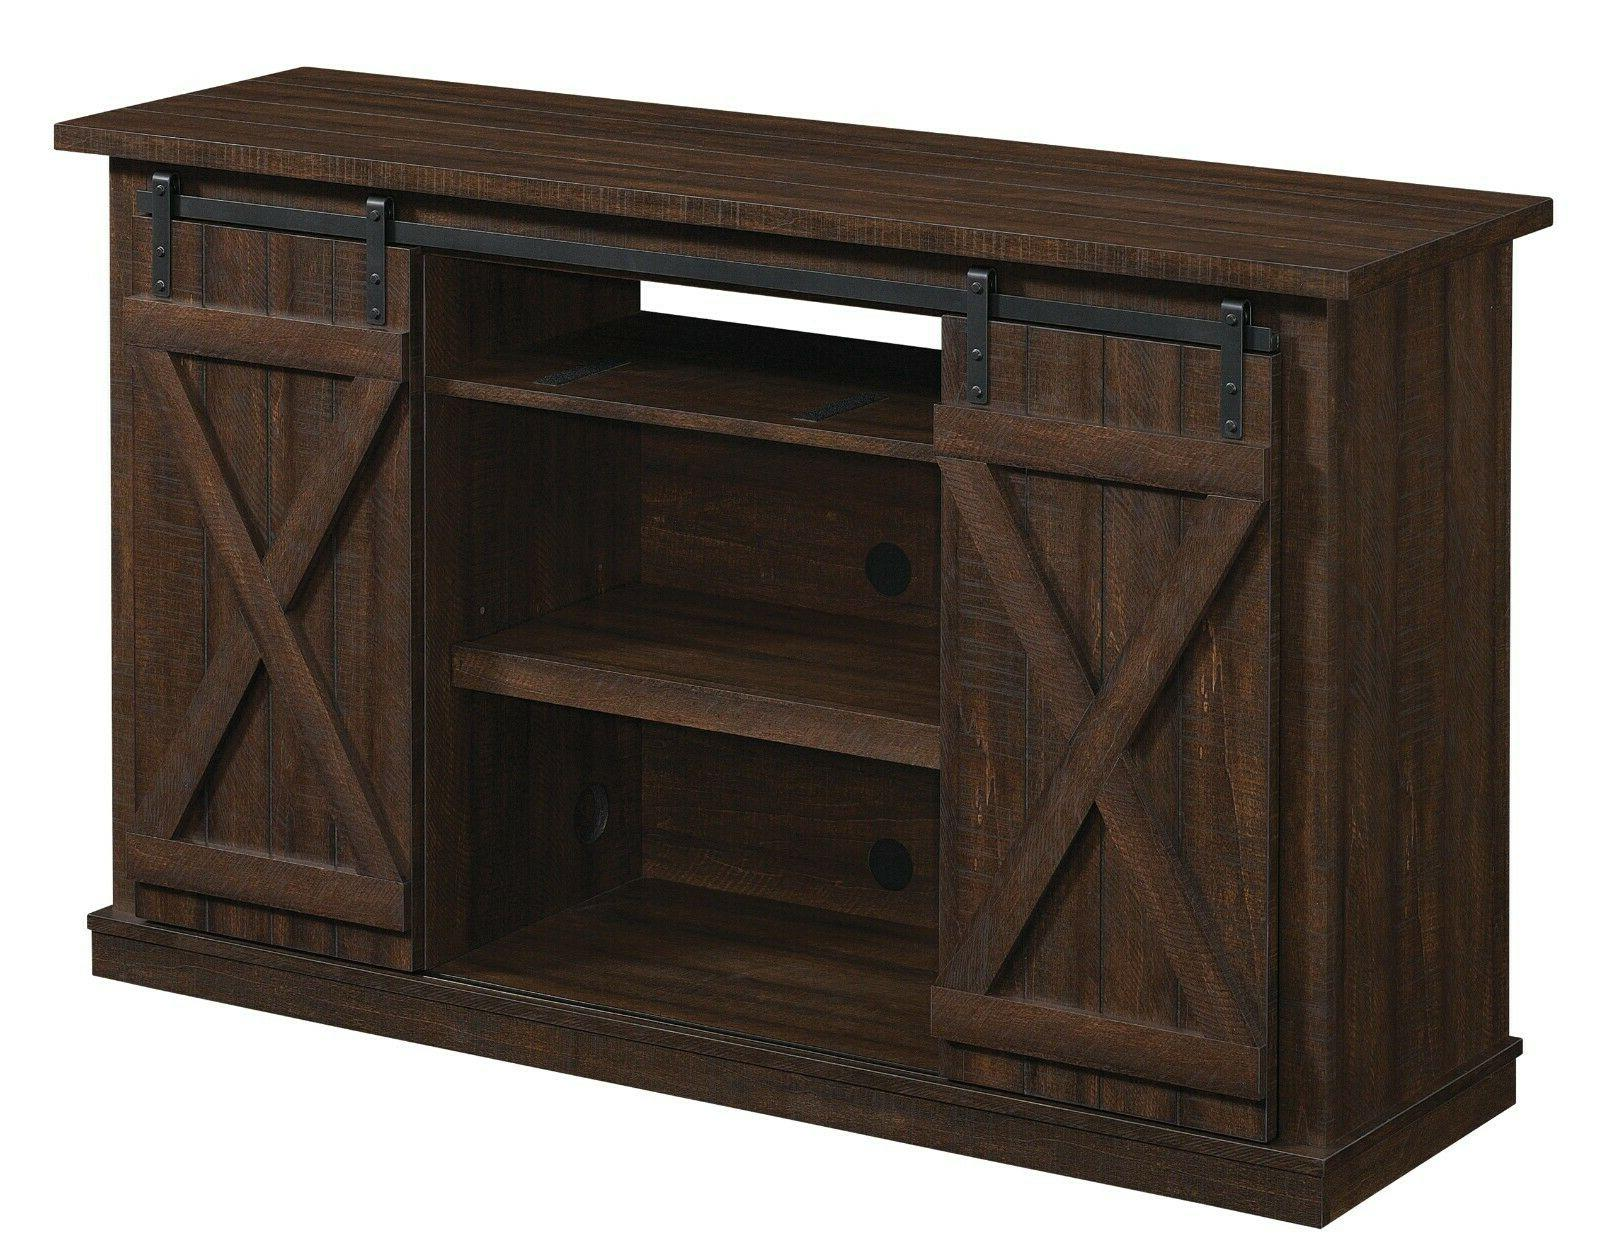 TV Entertainment Center Console Wood Barn Door Rustic